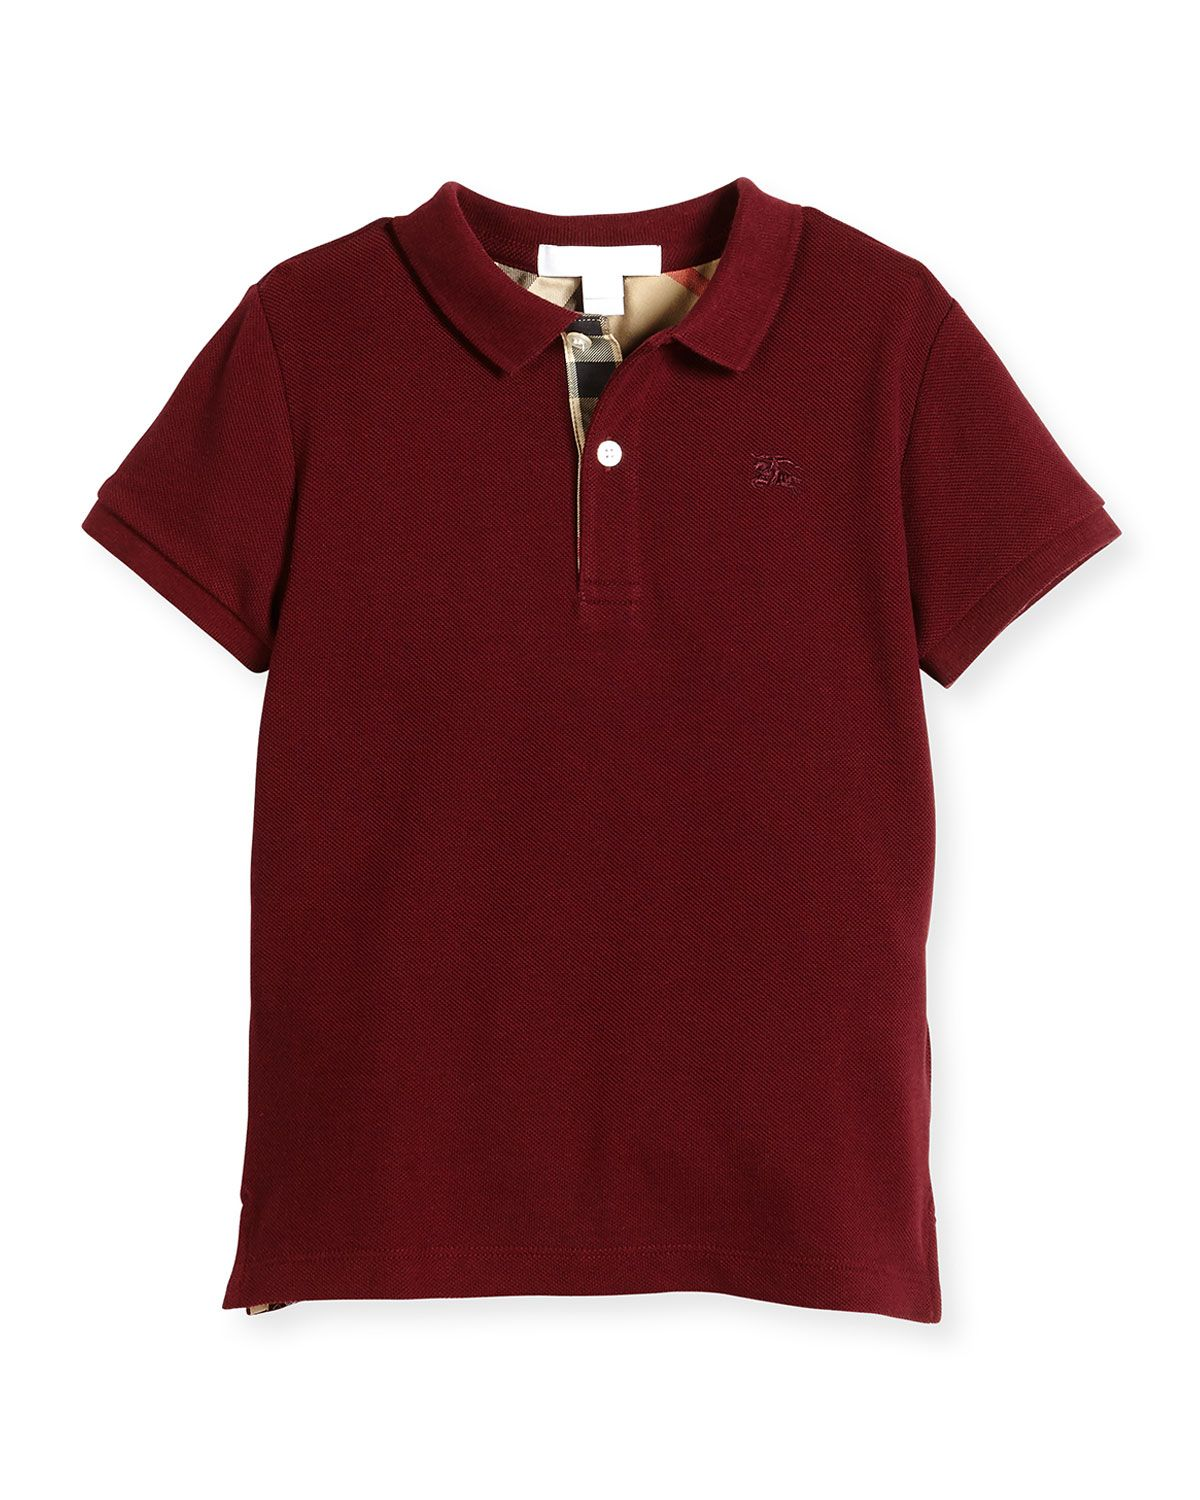 Mini Ppm Jersey Polo Shirt Burgundy Red Size 4 14 Boys Size 8